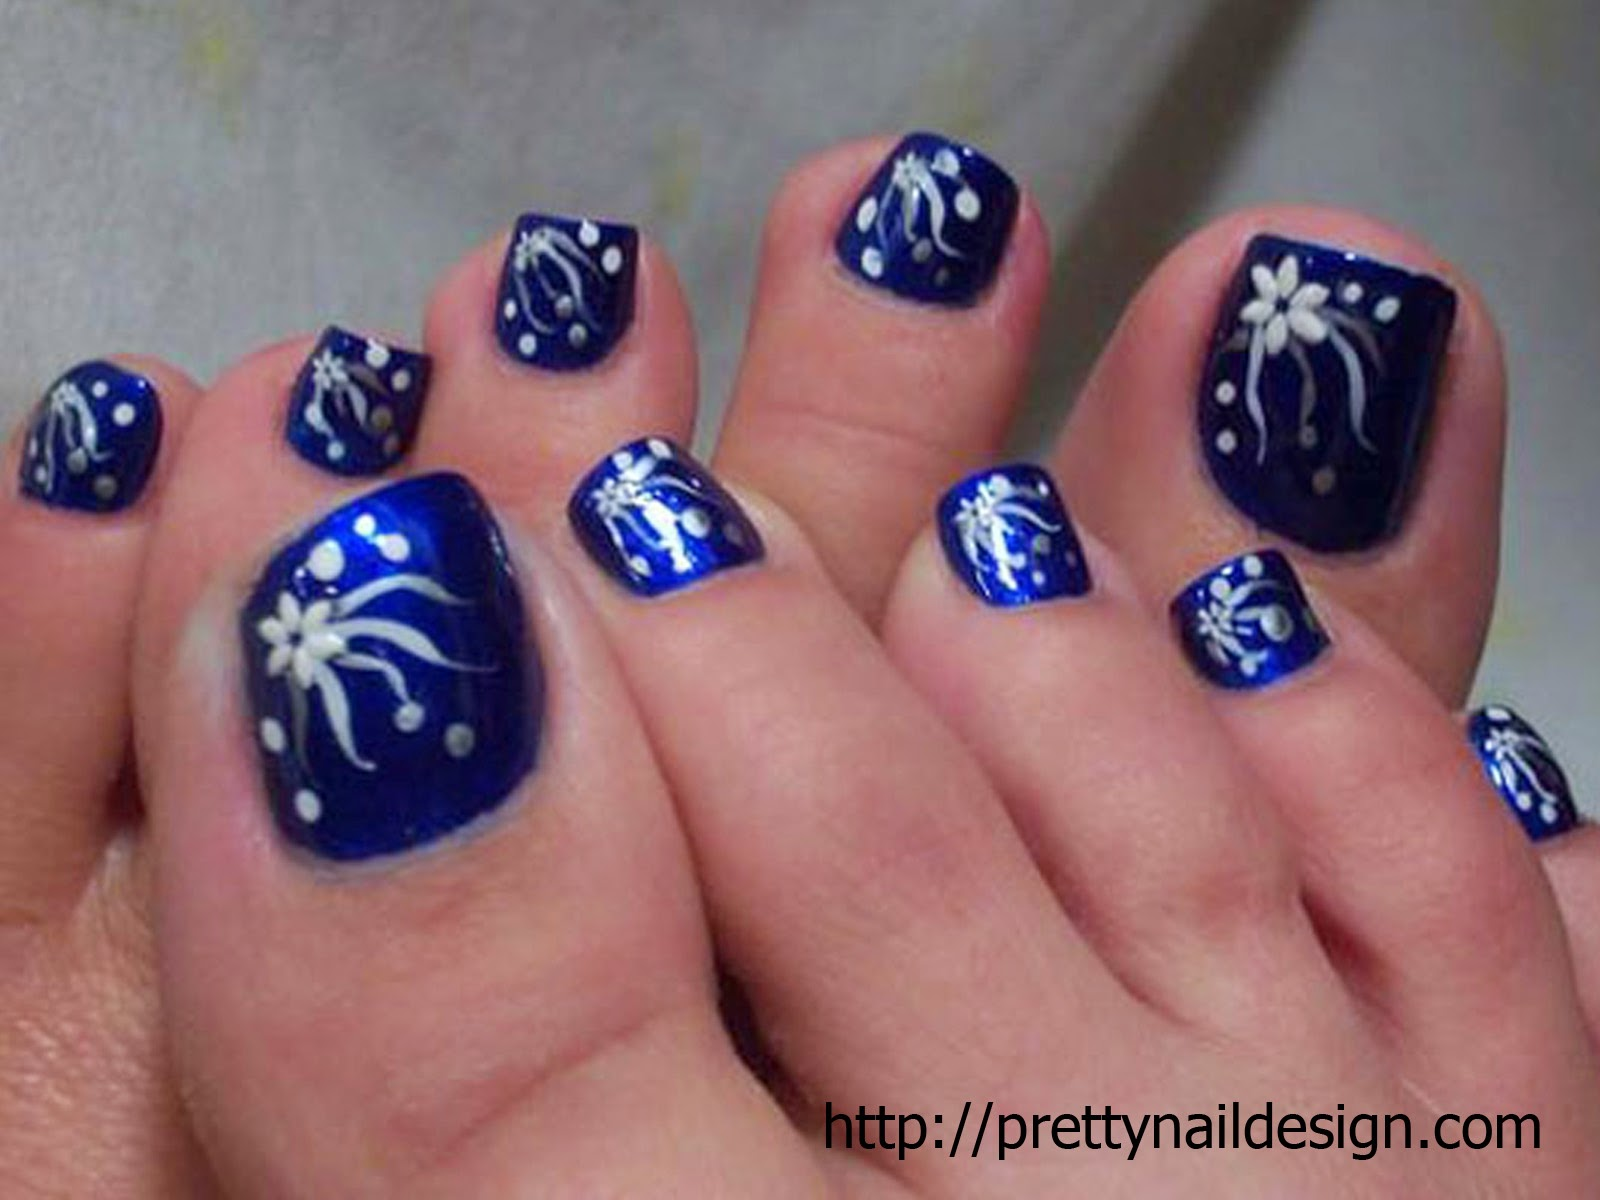 Nail Design Nail Art Designs For Toes